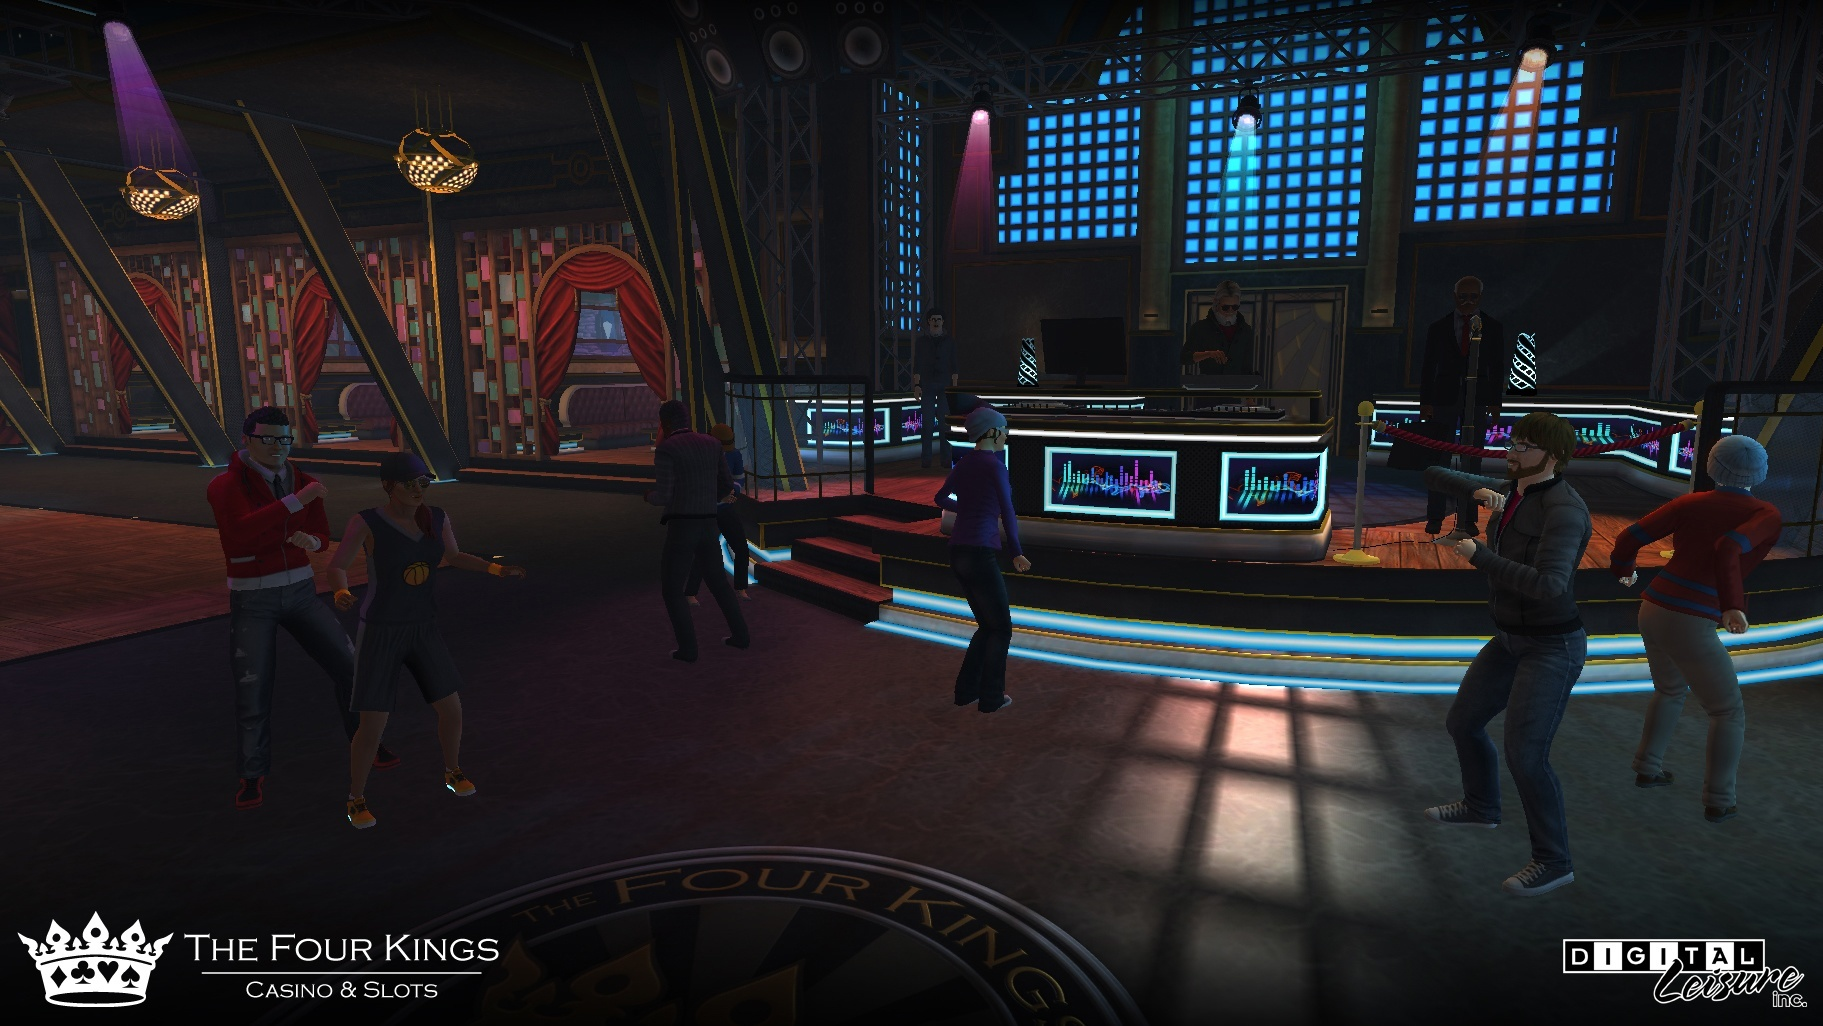 News About Digital Leisure's Four Kings Casino, kwoman32, Mar 16, 2015, 6:54 PM, YourPSHome.net, jpg, ss4_NightClub.jpg